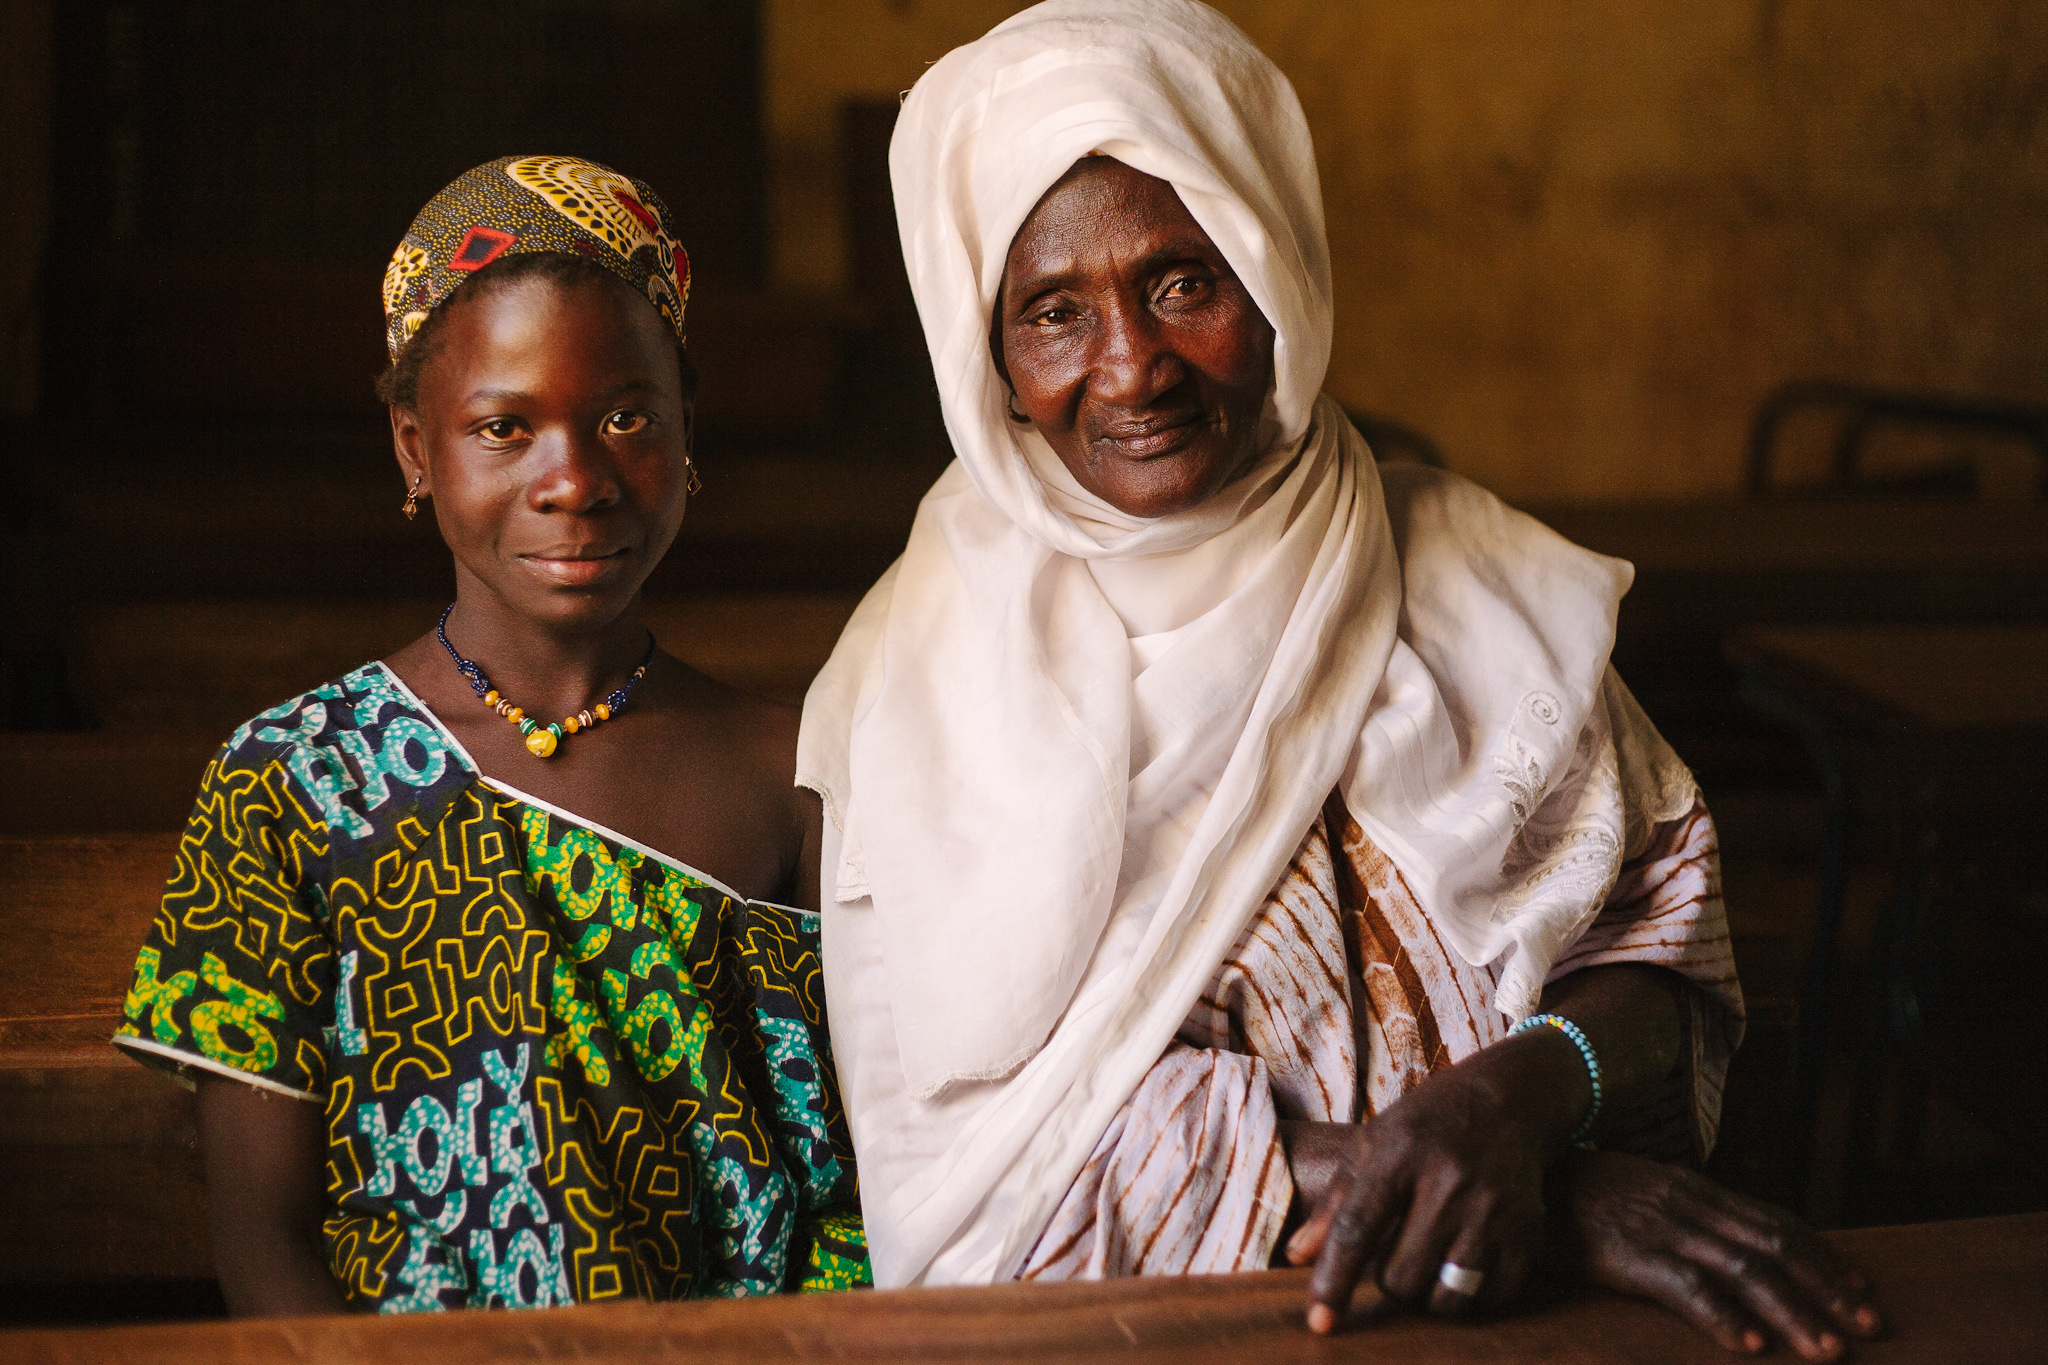 Kadjatou Bagayogo sits with her grandmother, Sira Samake, in a Beneko classroom. Kadjatou is a classmate of Moussa's, and is interested in going into teaching when she grows up.